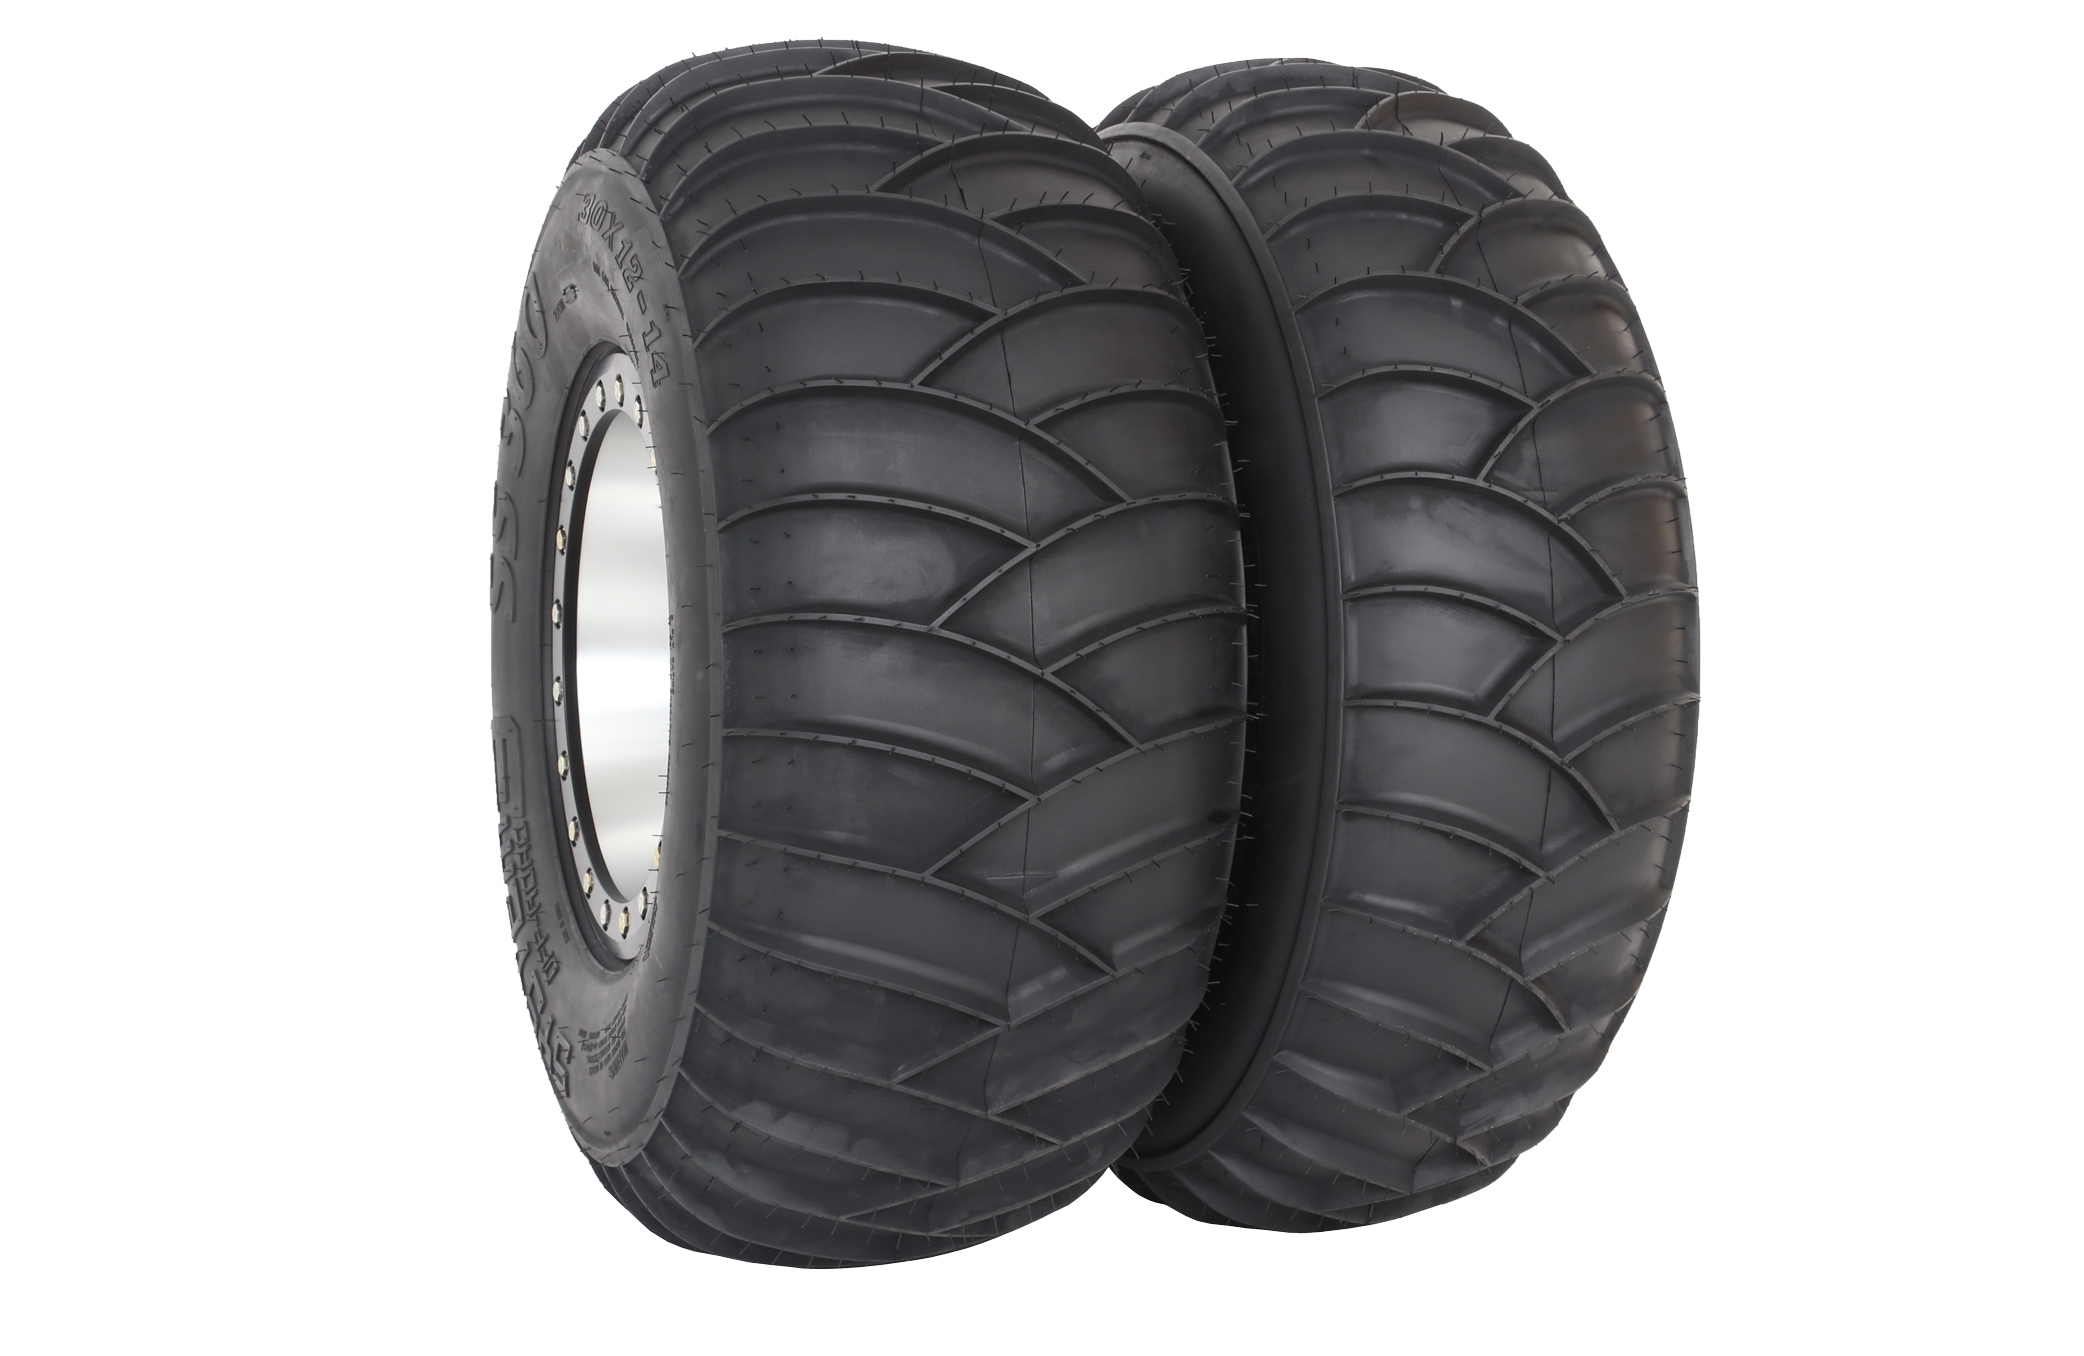 System 3 Offroad's new SS360 sand tires